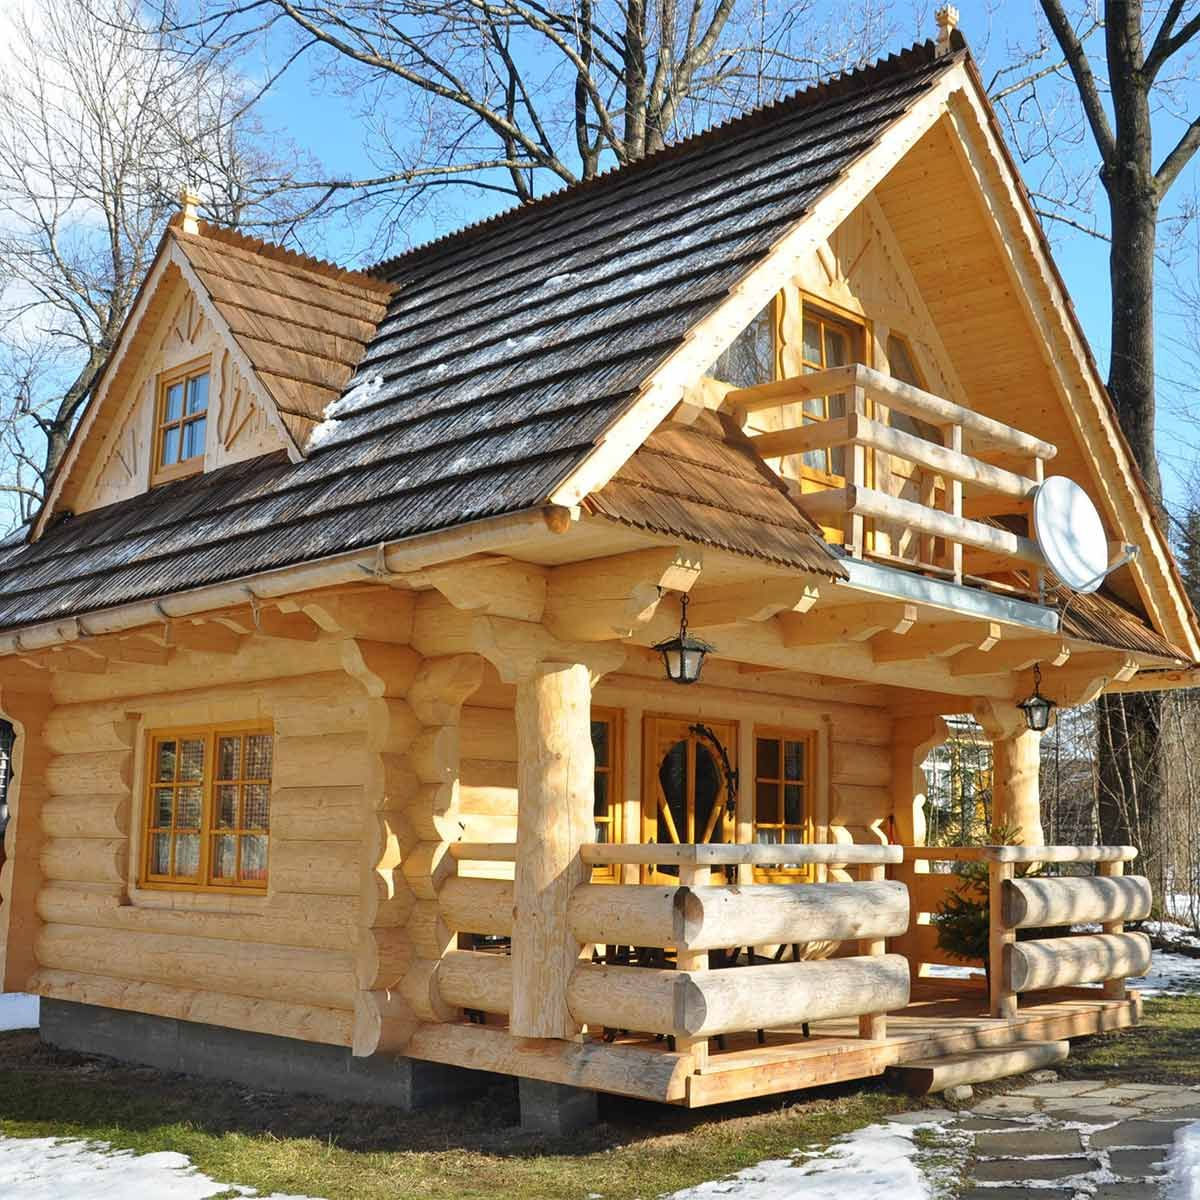 16 Amazing Cabins You Have To See To Believe Small Log Cabin Tiny Log Cabins Little Log Cabin